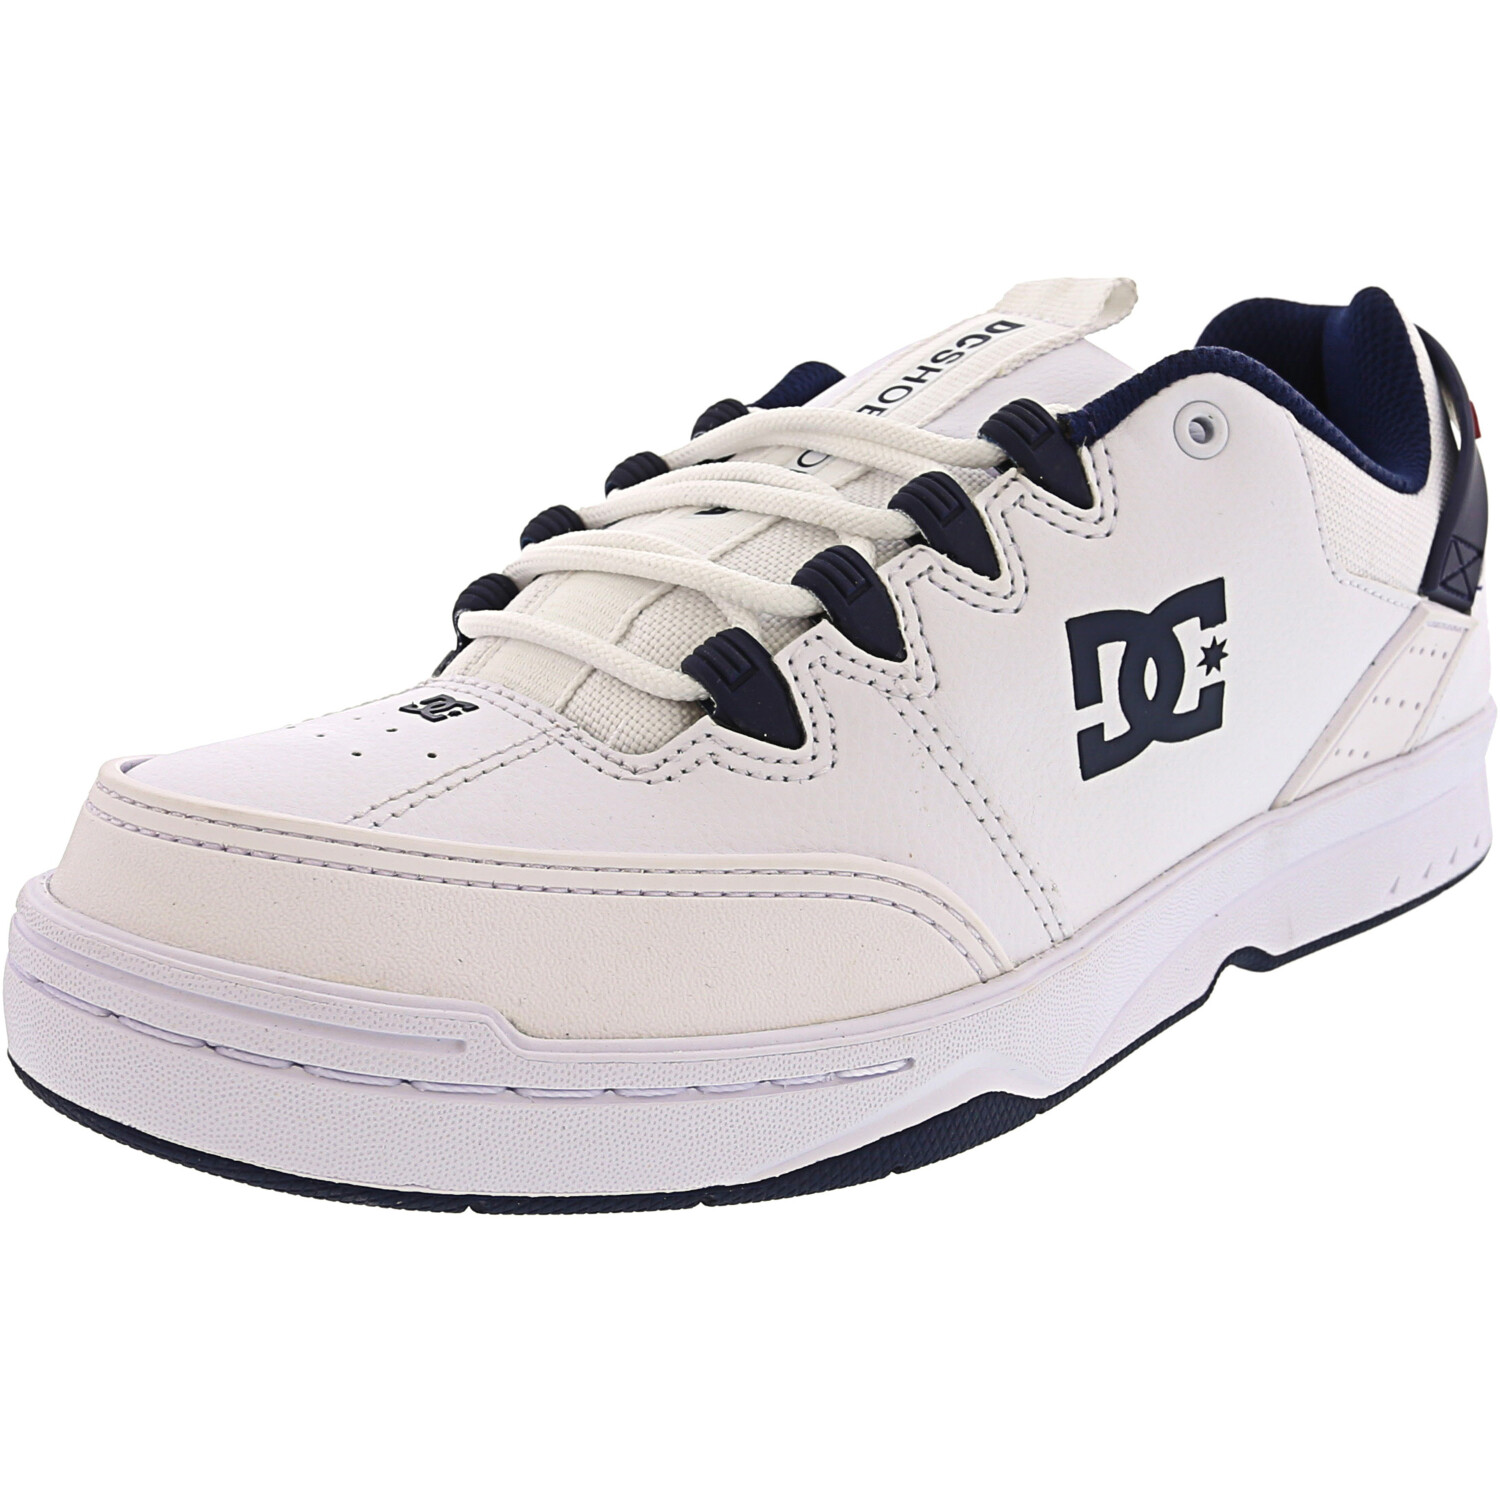 Dc Men's Syntax White / Navy Ankle-High Leather Women' - 8M